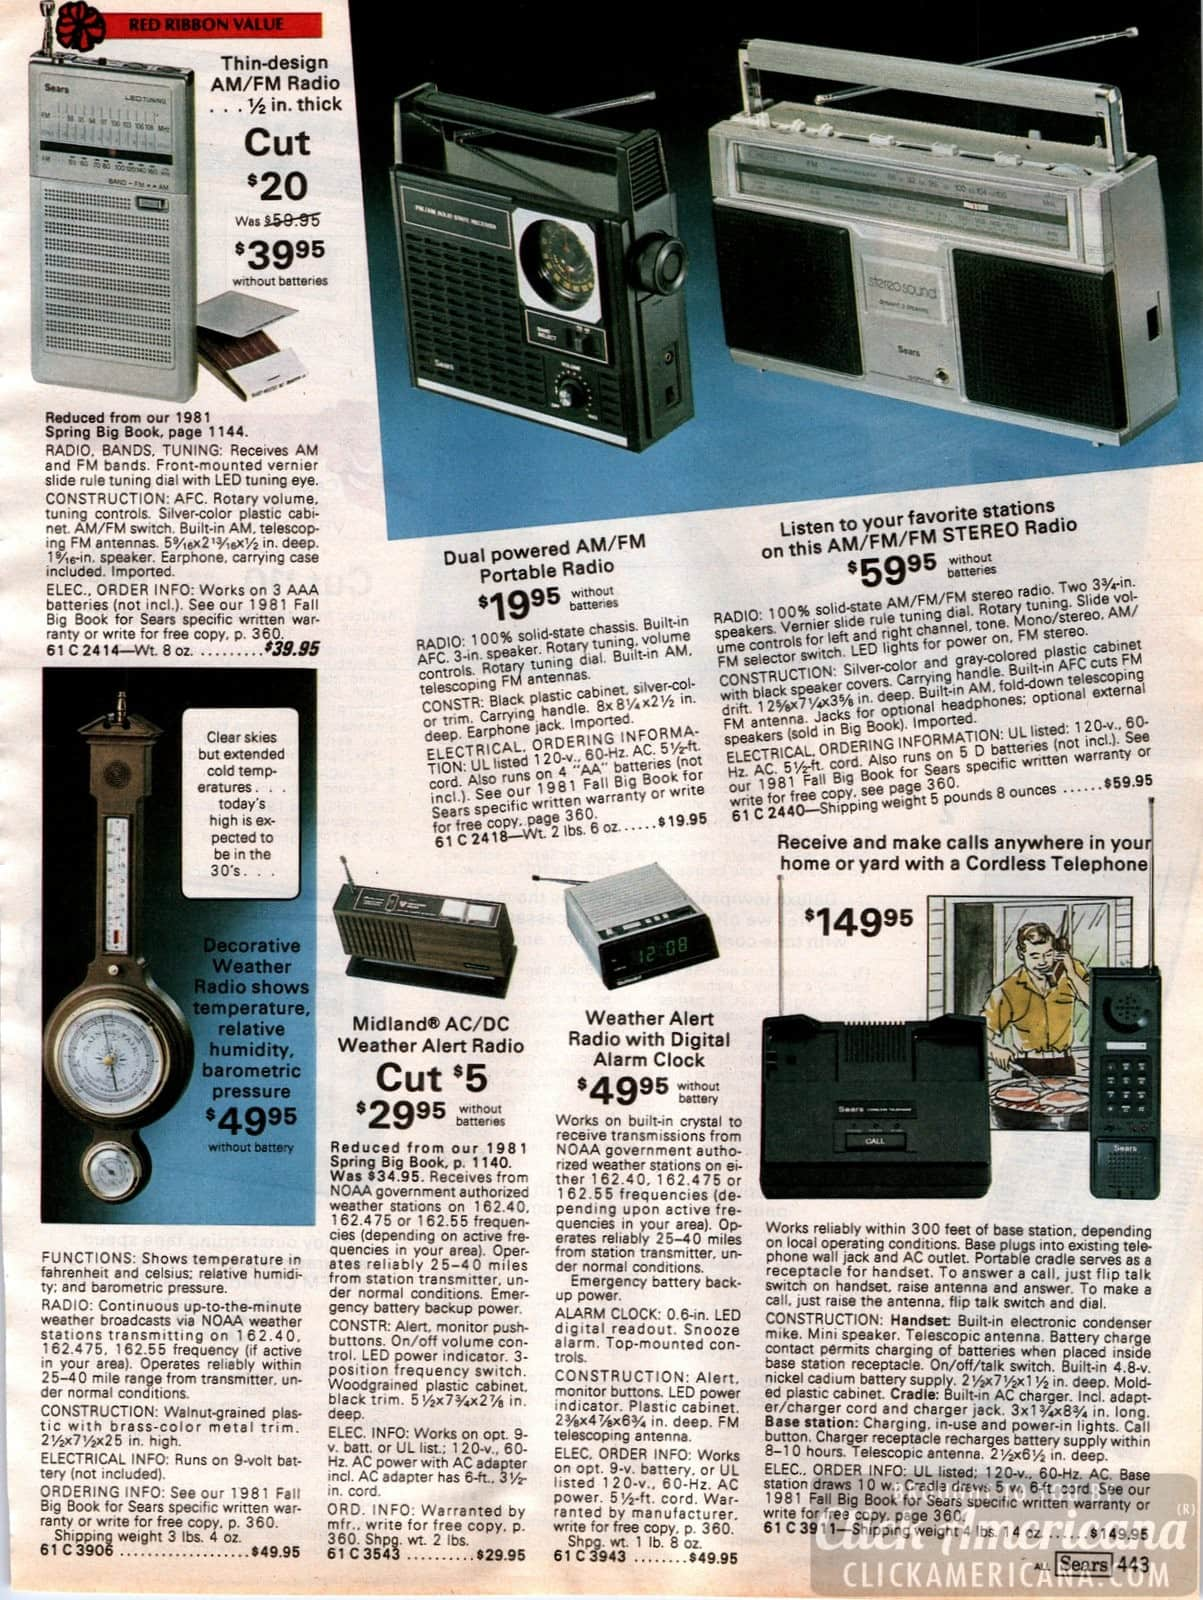 Portable radios and stereo radios - plus a new cordless telephone